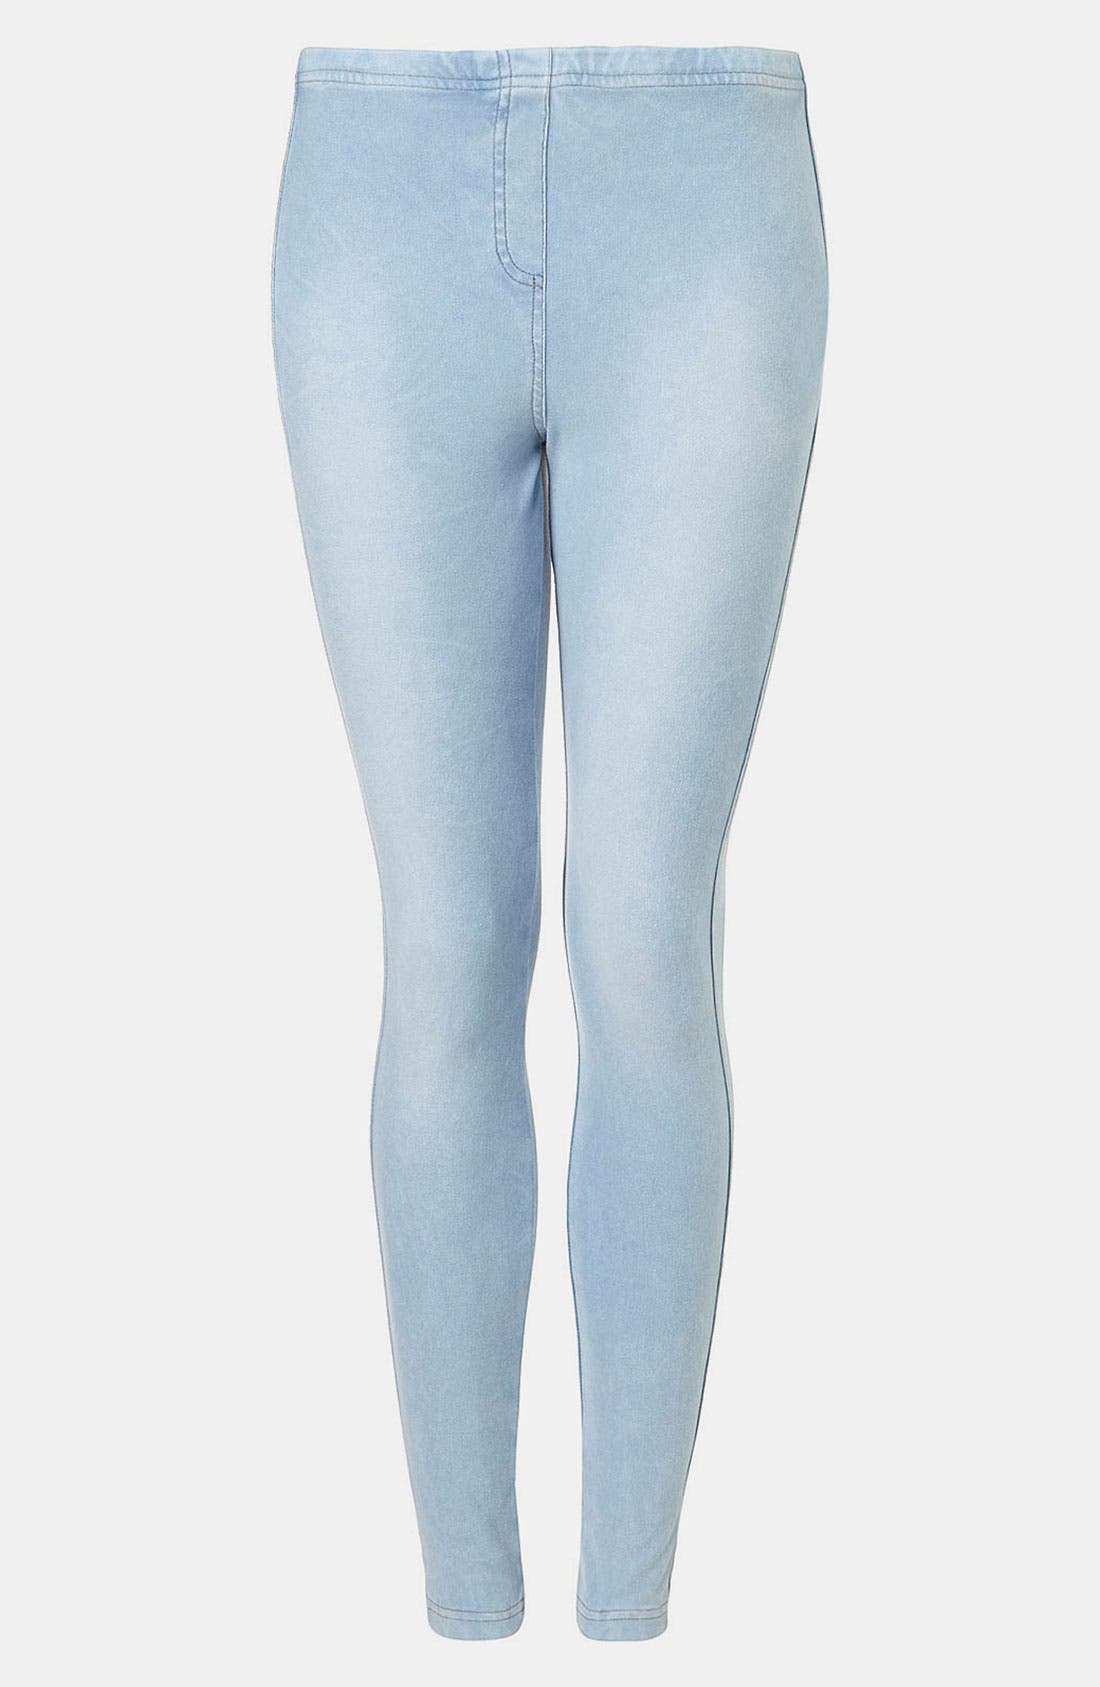 Alternate Image 1 Selected - Topshop Bleach-Wash Denim Leggings